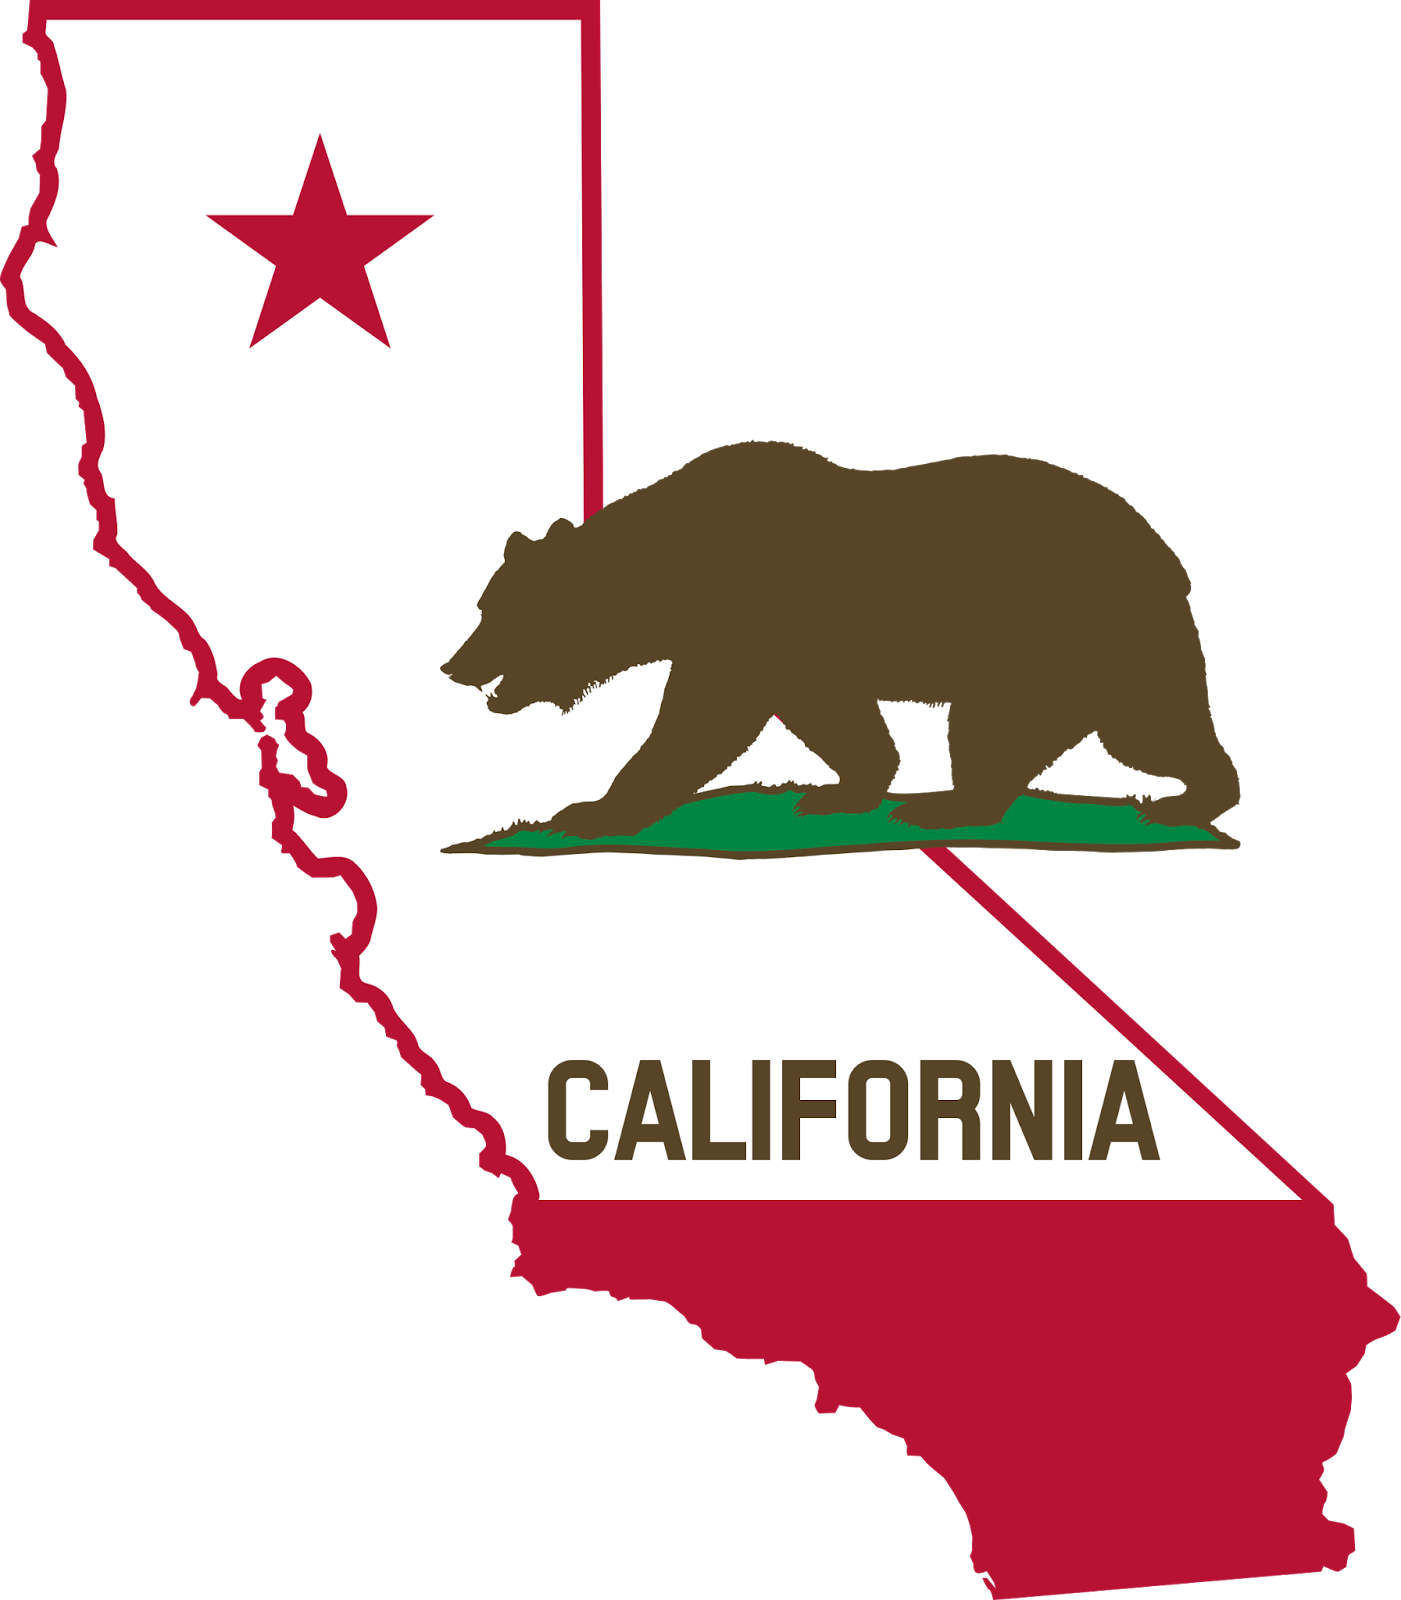 Calif transparent state logo. Is california considered a